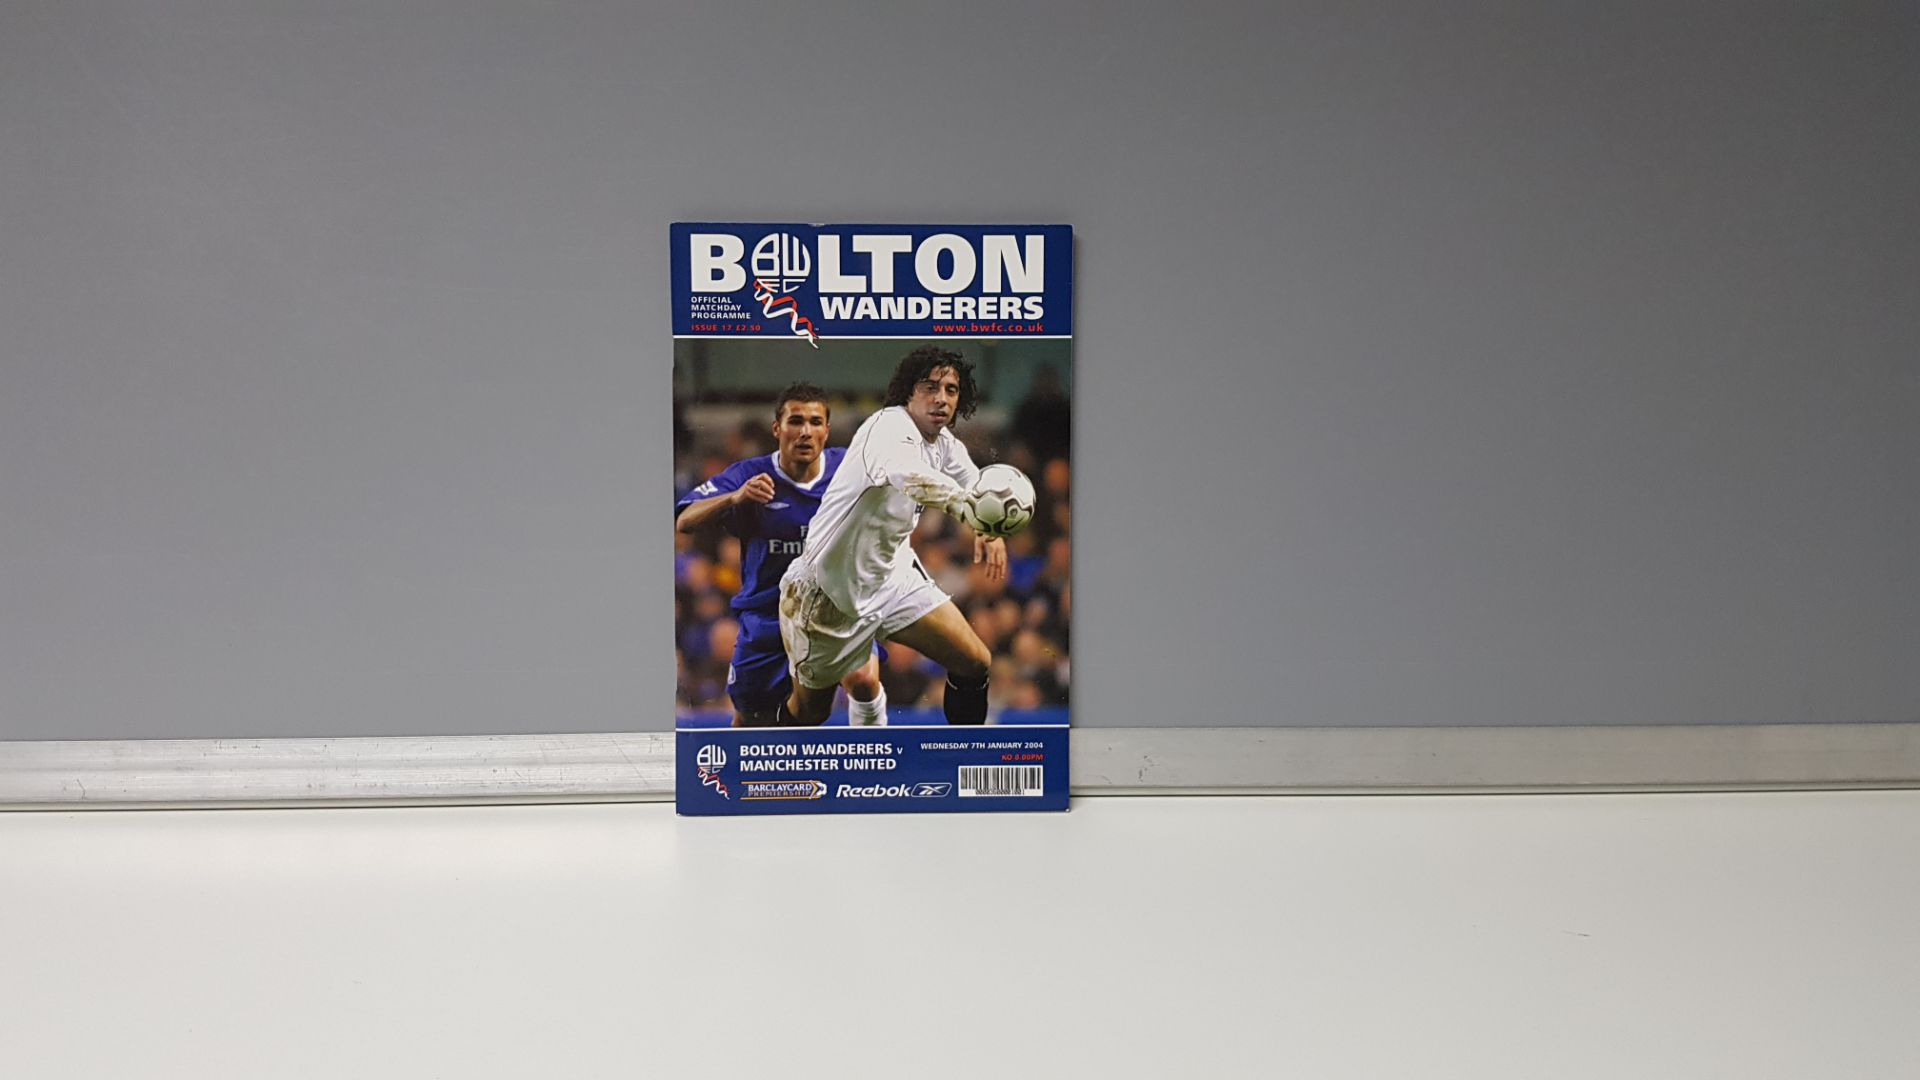 1 X MANCHESTER UNITED AWAY PROGRAMME FROM THE 2004 SEASON TO INCLUDE - MANCHESTER UNITED VS BOLTON